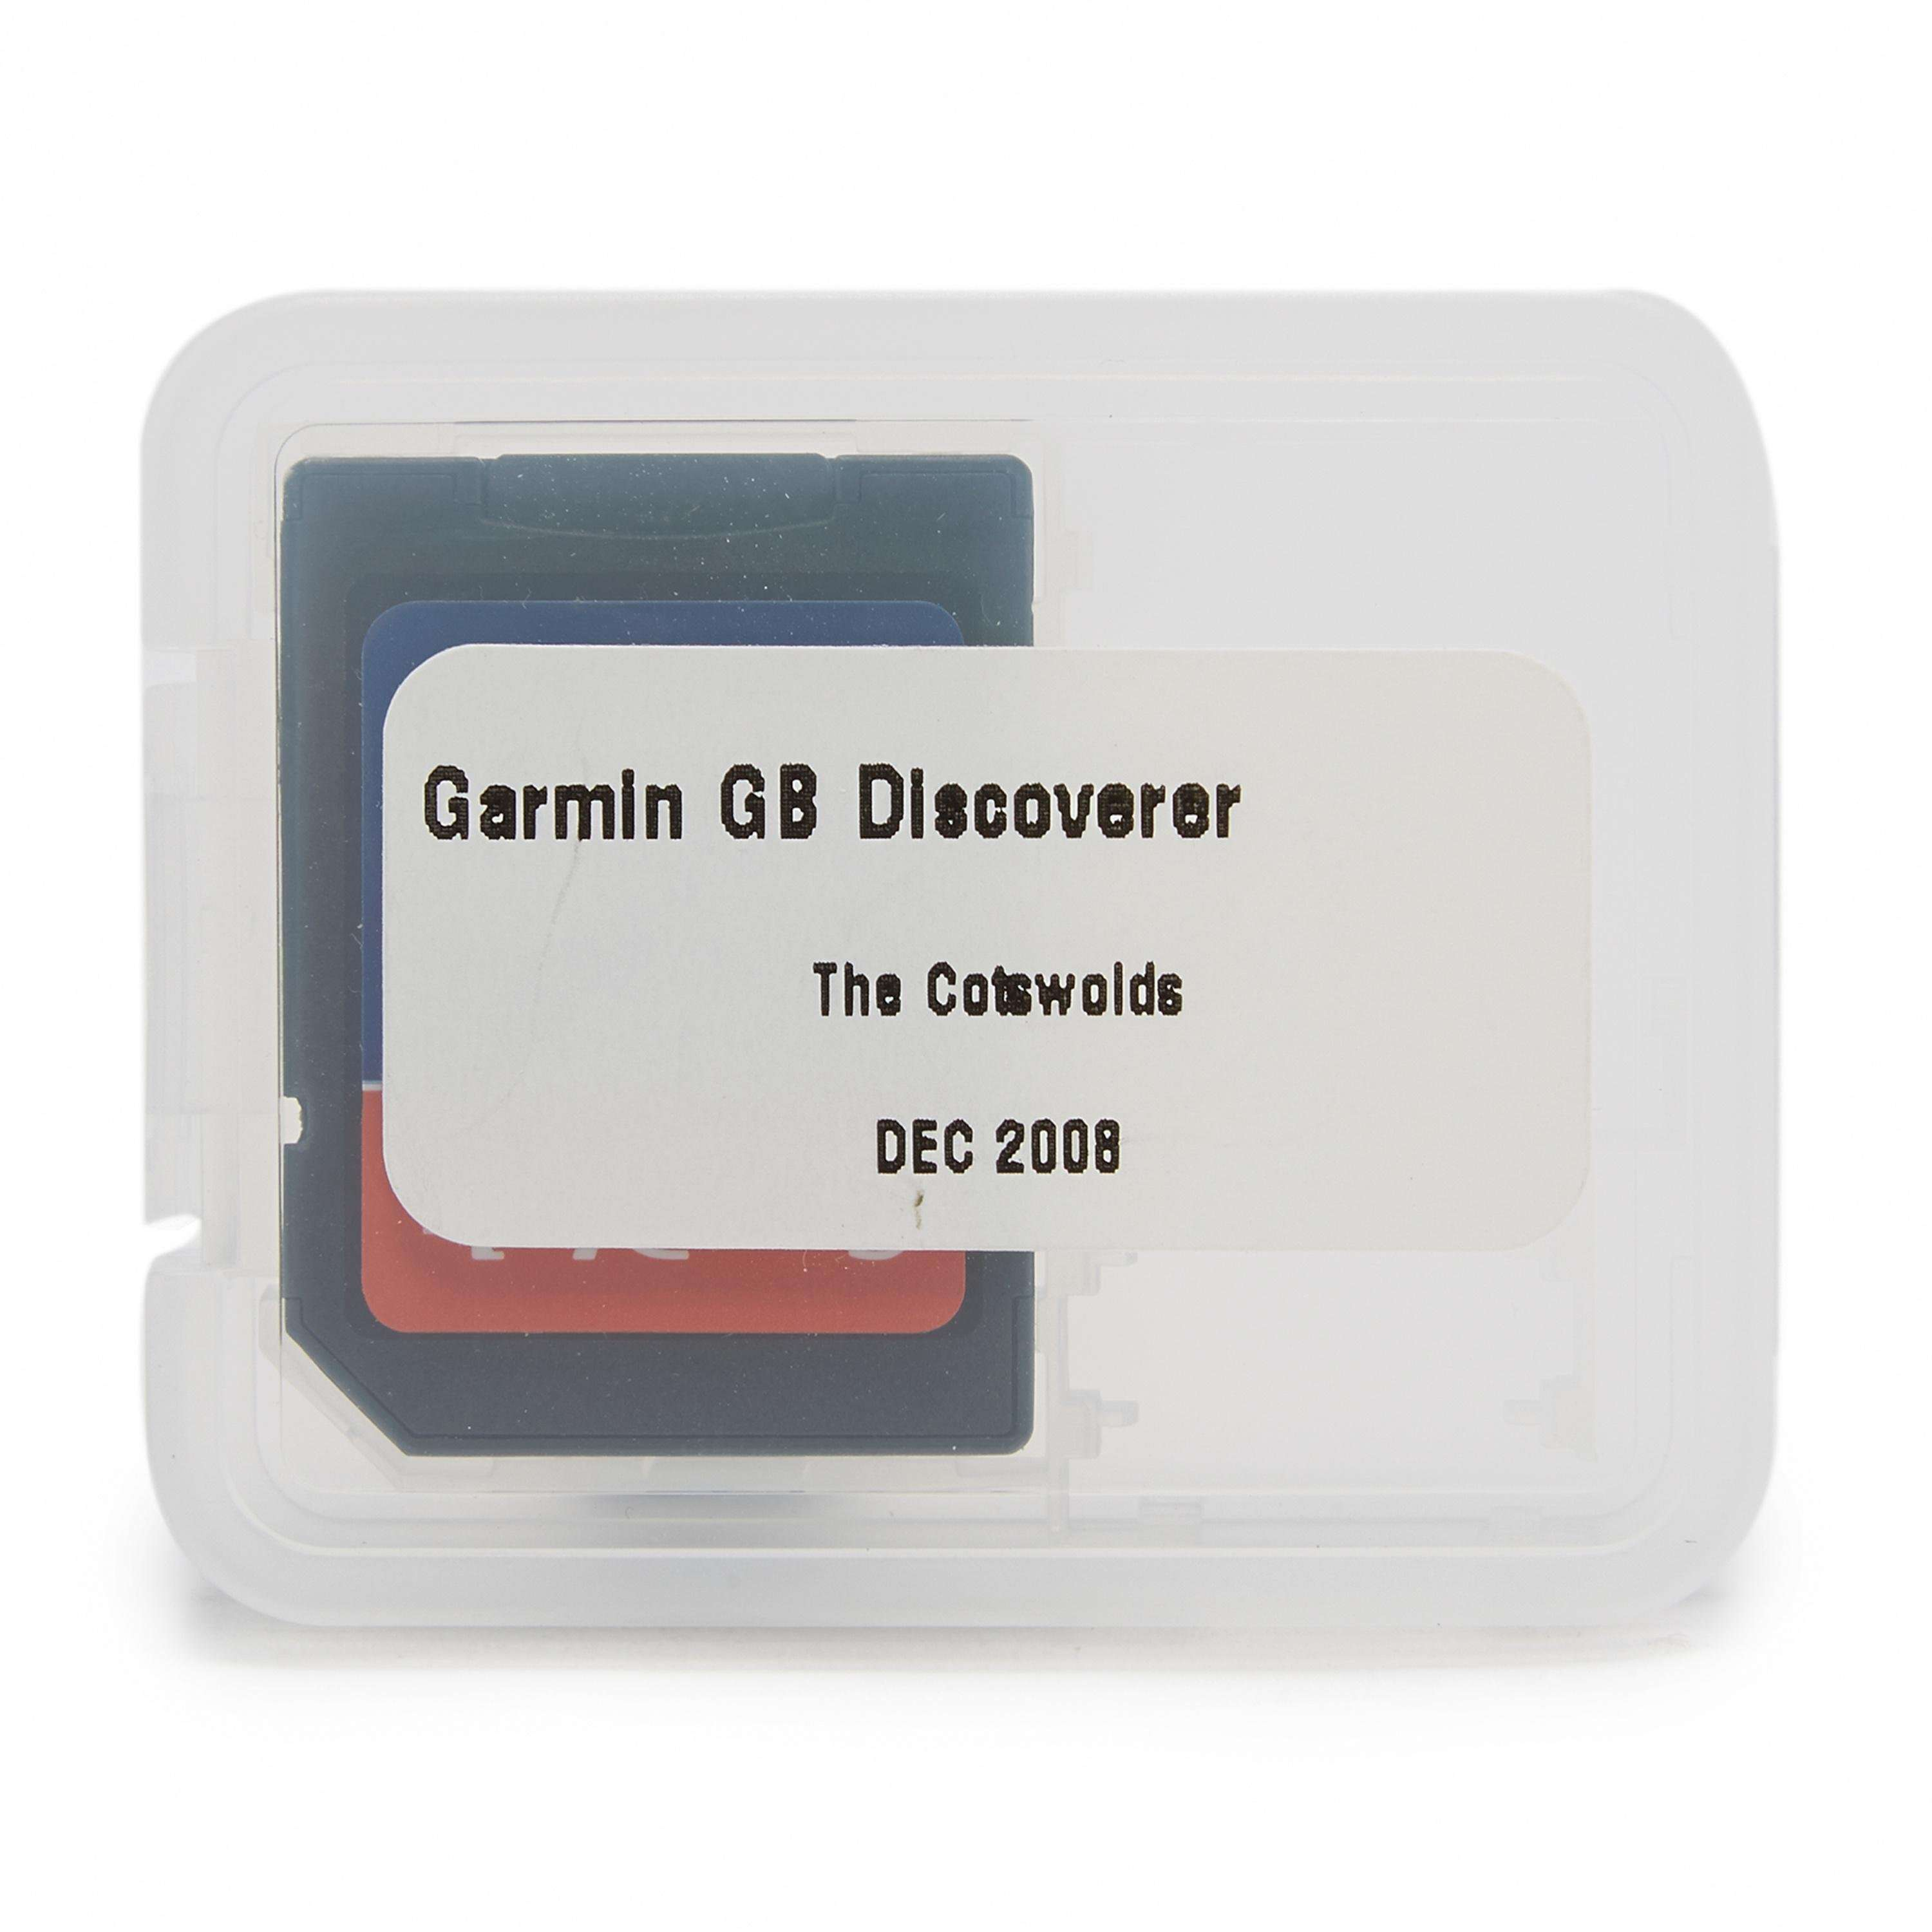 GARMIN GB Discoverer 1:25K The Cotswolds MicroSD Card